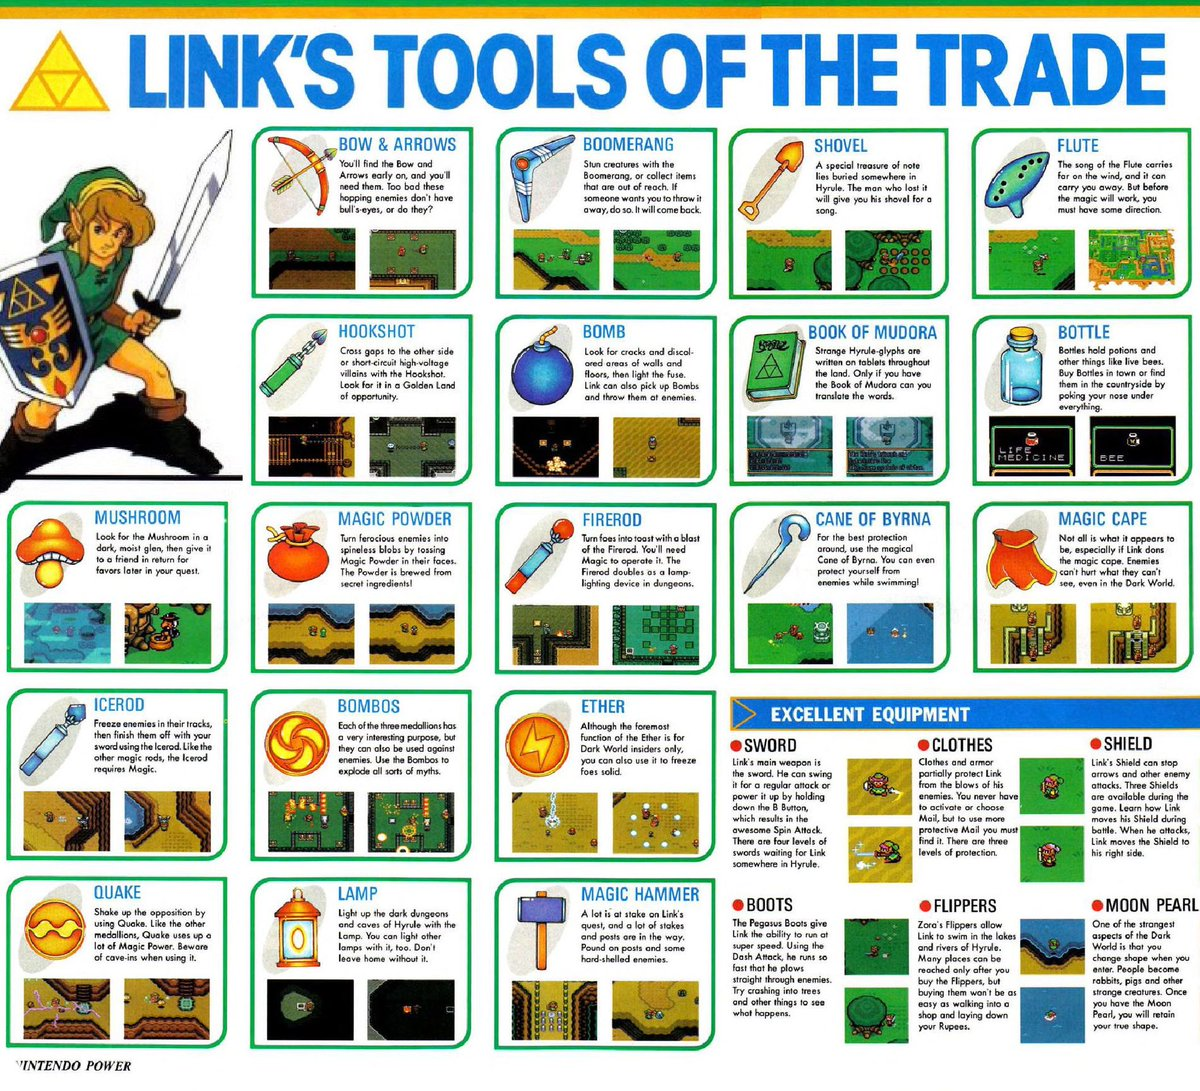 Worth It Or Worthless Retro Game Podcast A Twitter Legend Of Zelda A Link To The Past For Snes Turns 28 Today The Zelda Series Has Some Iconic Items The Master